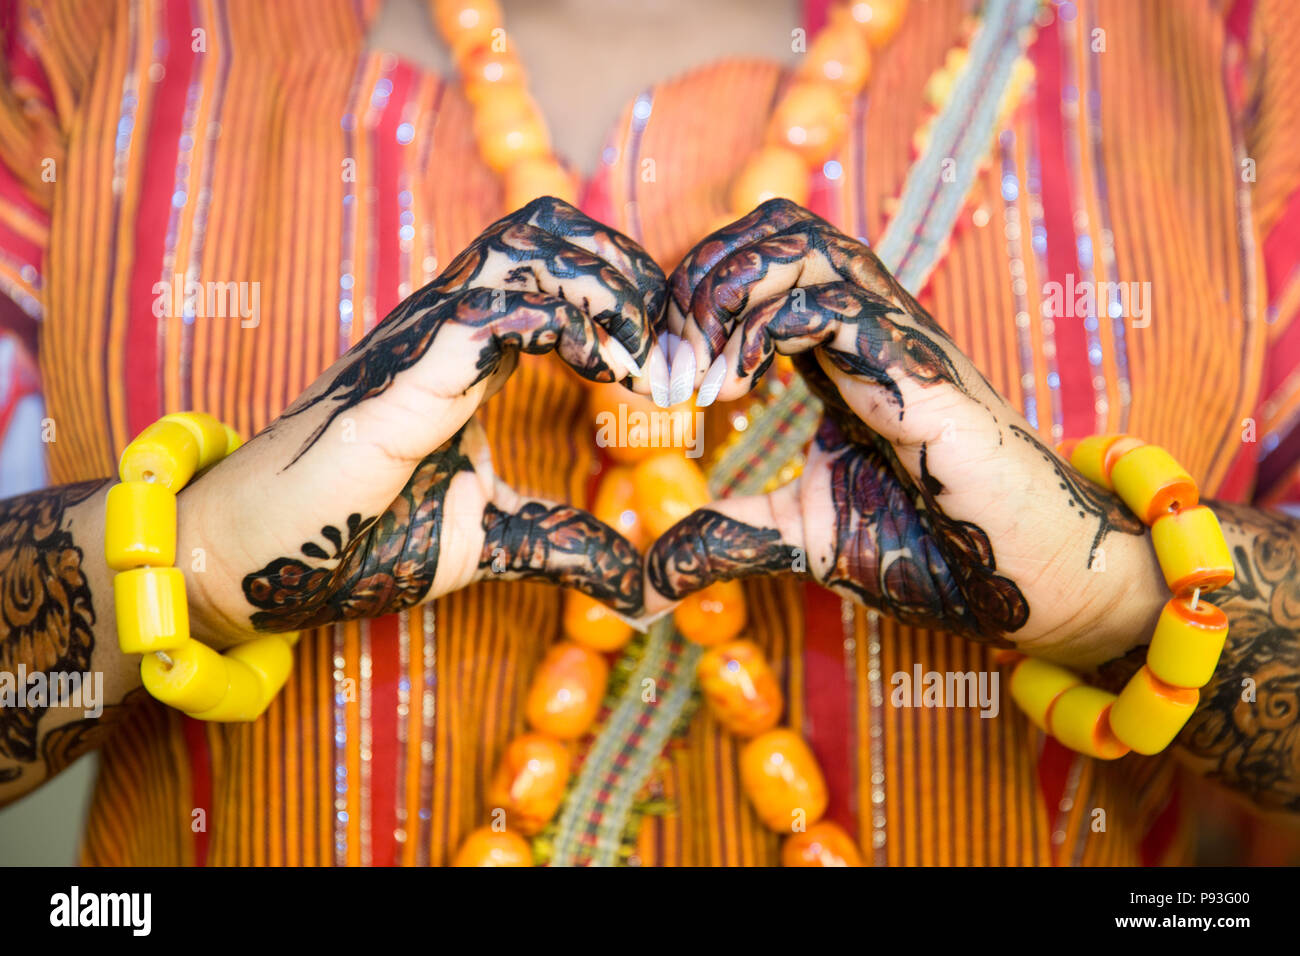 African Woman making a Heart Shape with Henna Painted Hands Stock Photo